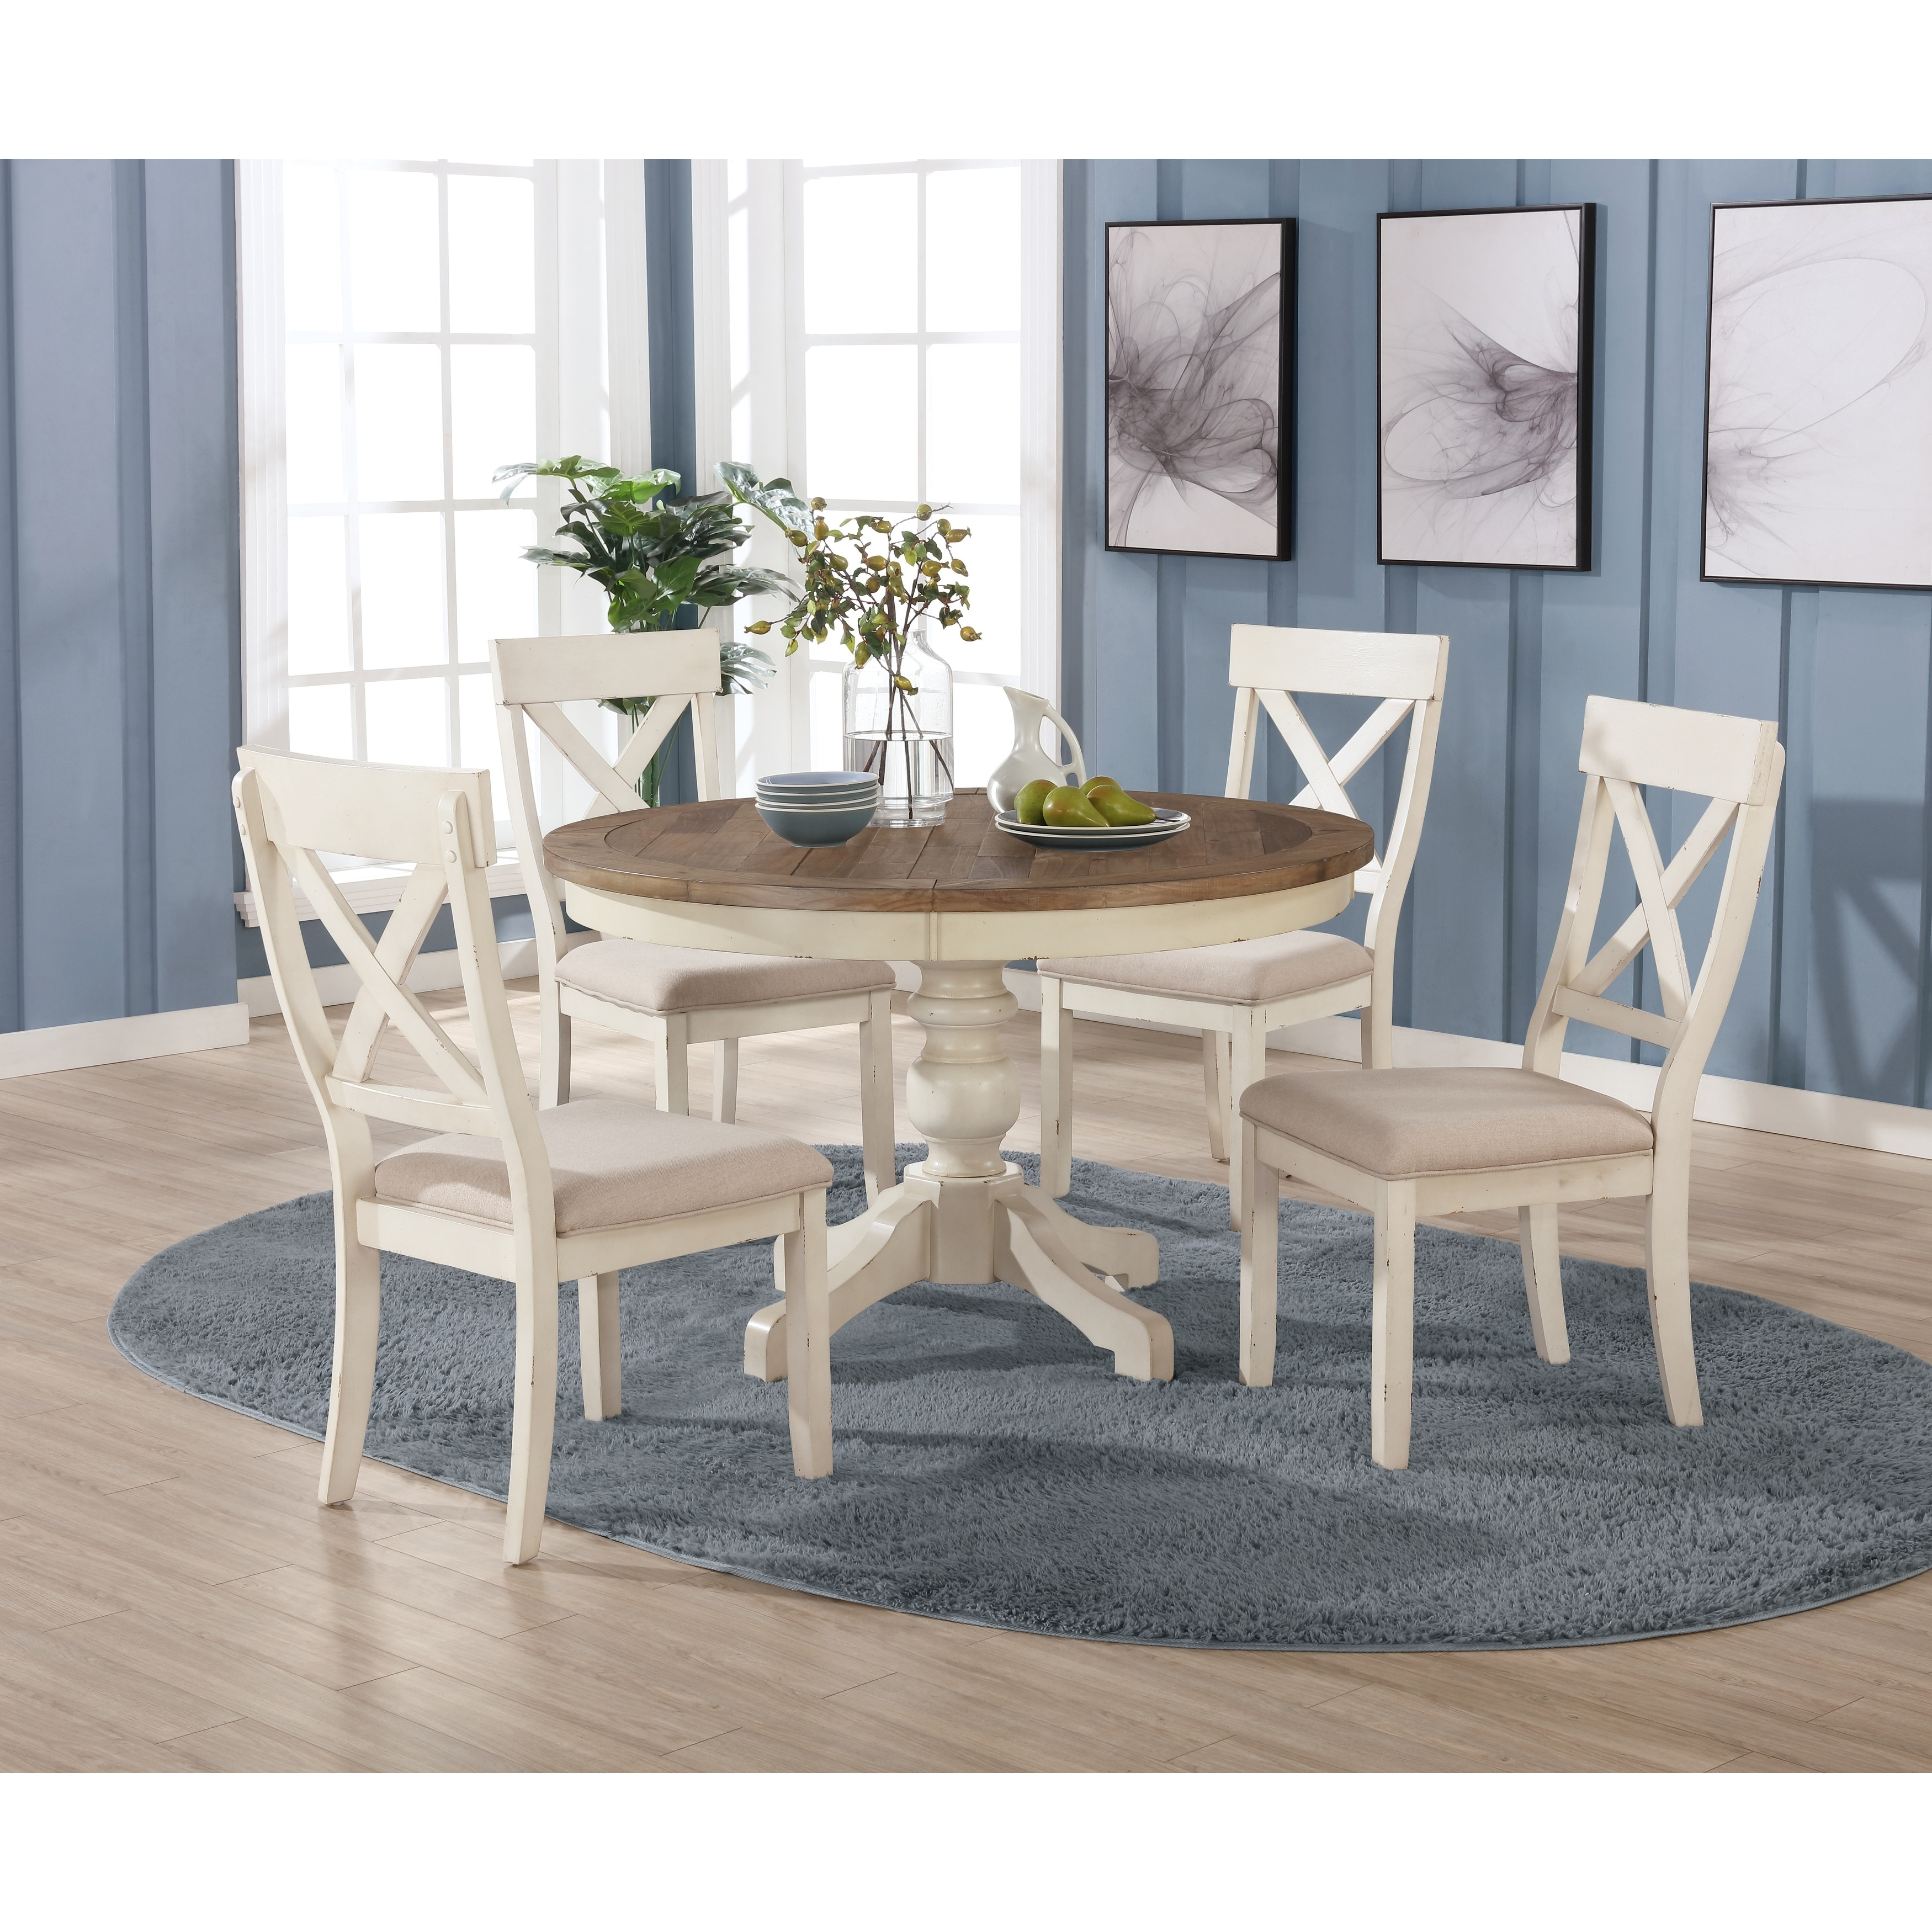 Prato 10-Piece Round Dining Table Set with Cross Back Chairs, Antique White  and Distressed Oak